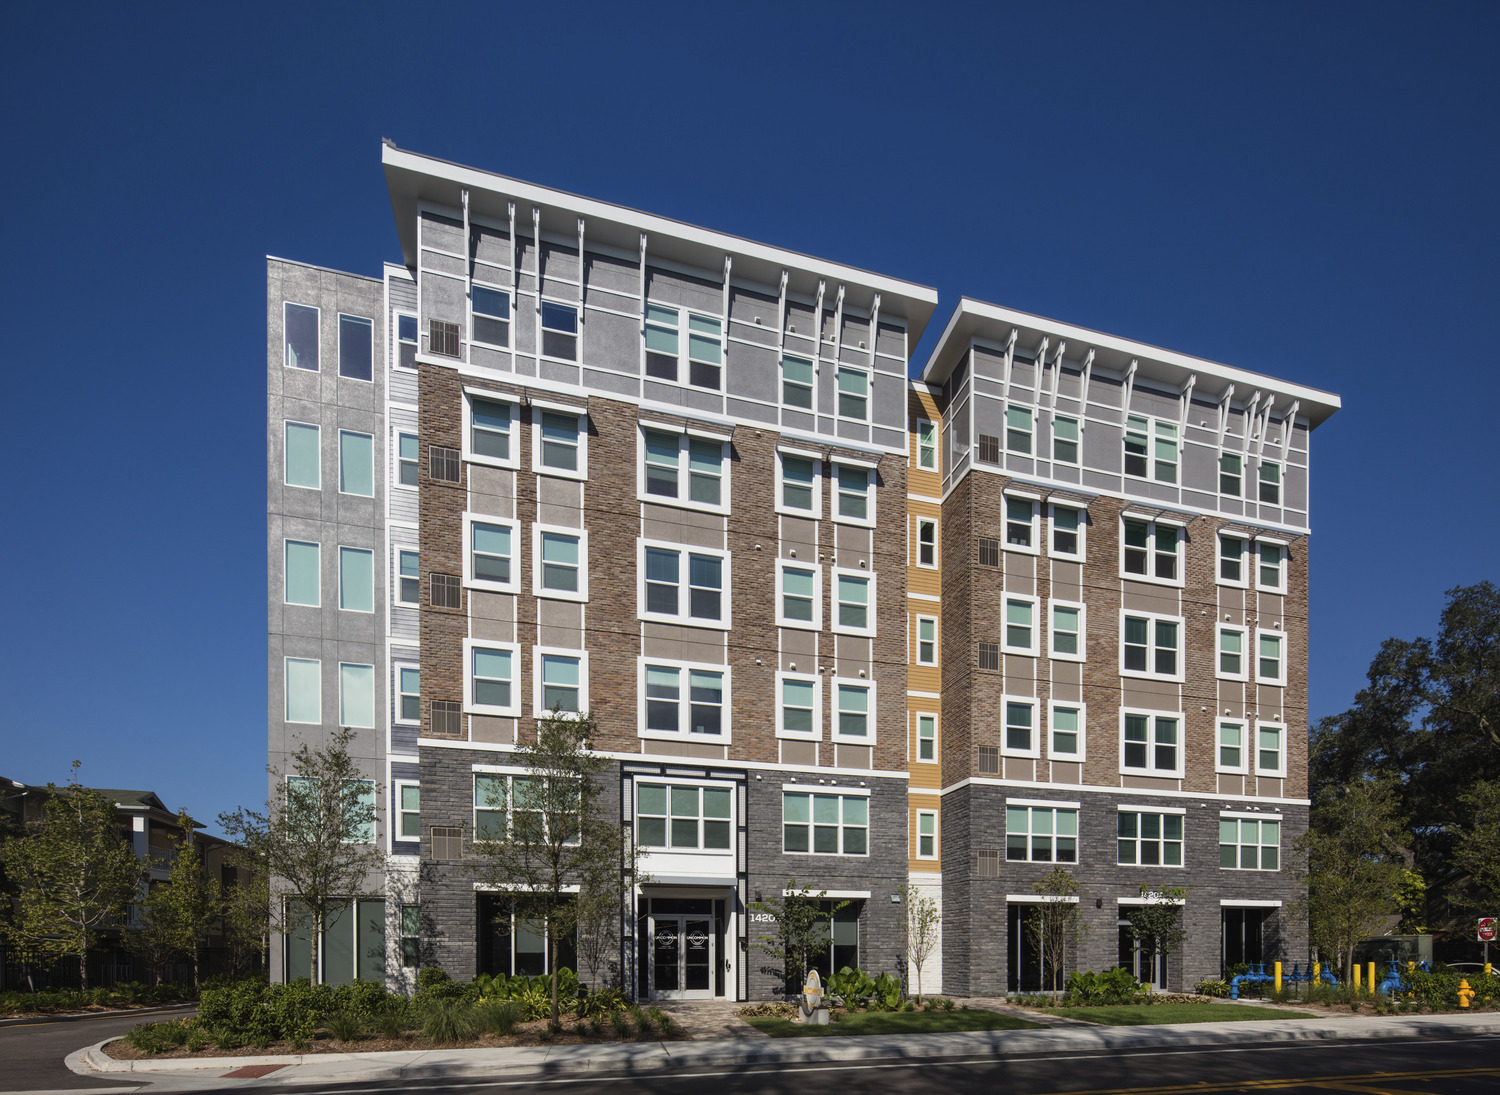 CBG builds Lark on 42nd, a 161-Unit, 512-Bed Student Housing Community with Amenities in Tampa, FL - Image #1